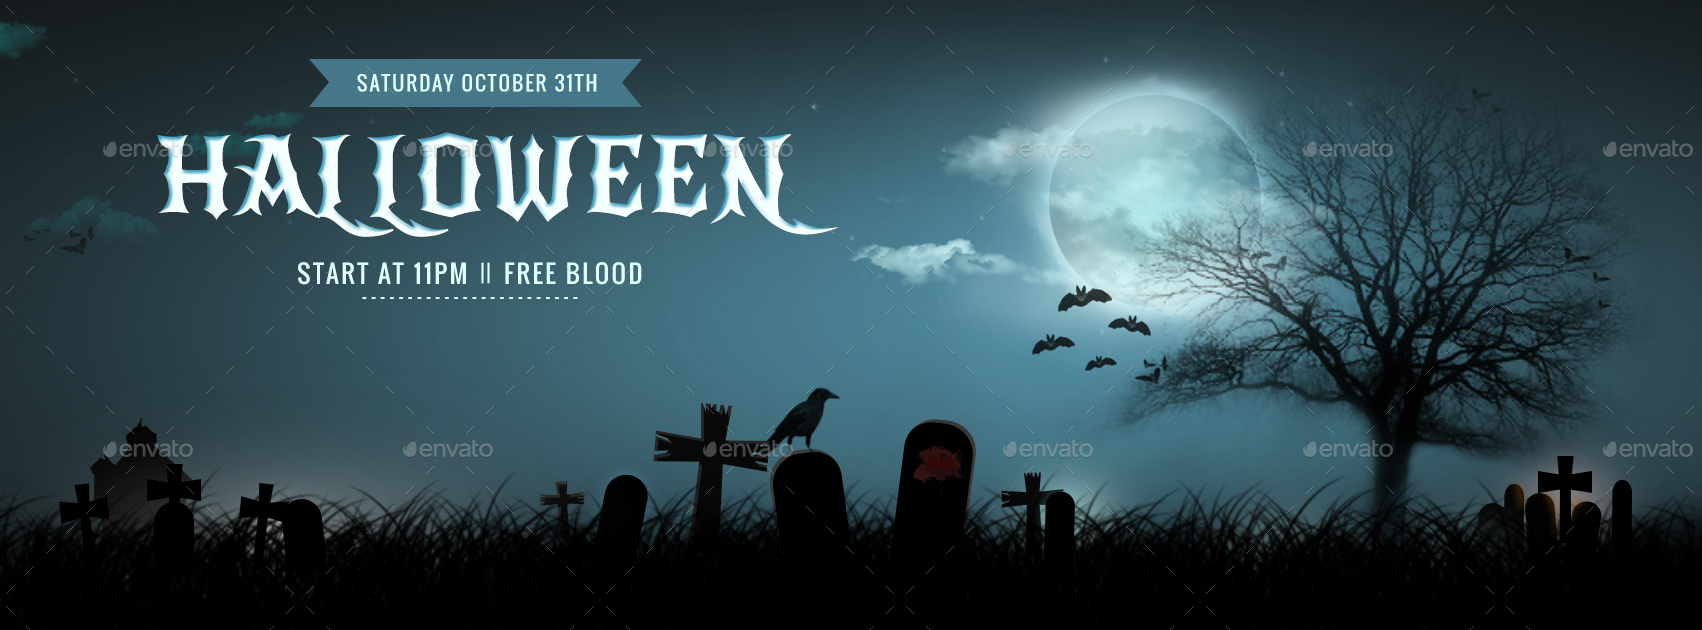 halloween facebook coverhyov | graphicriver